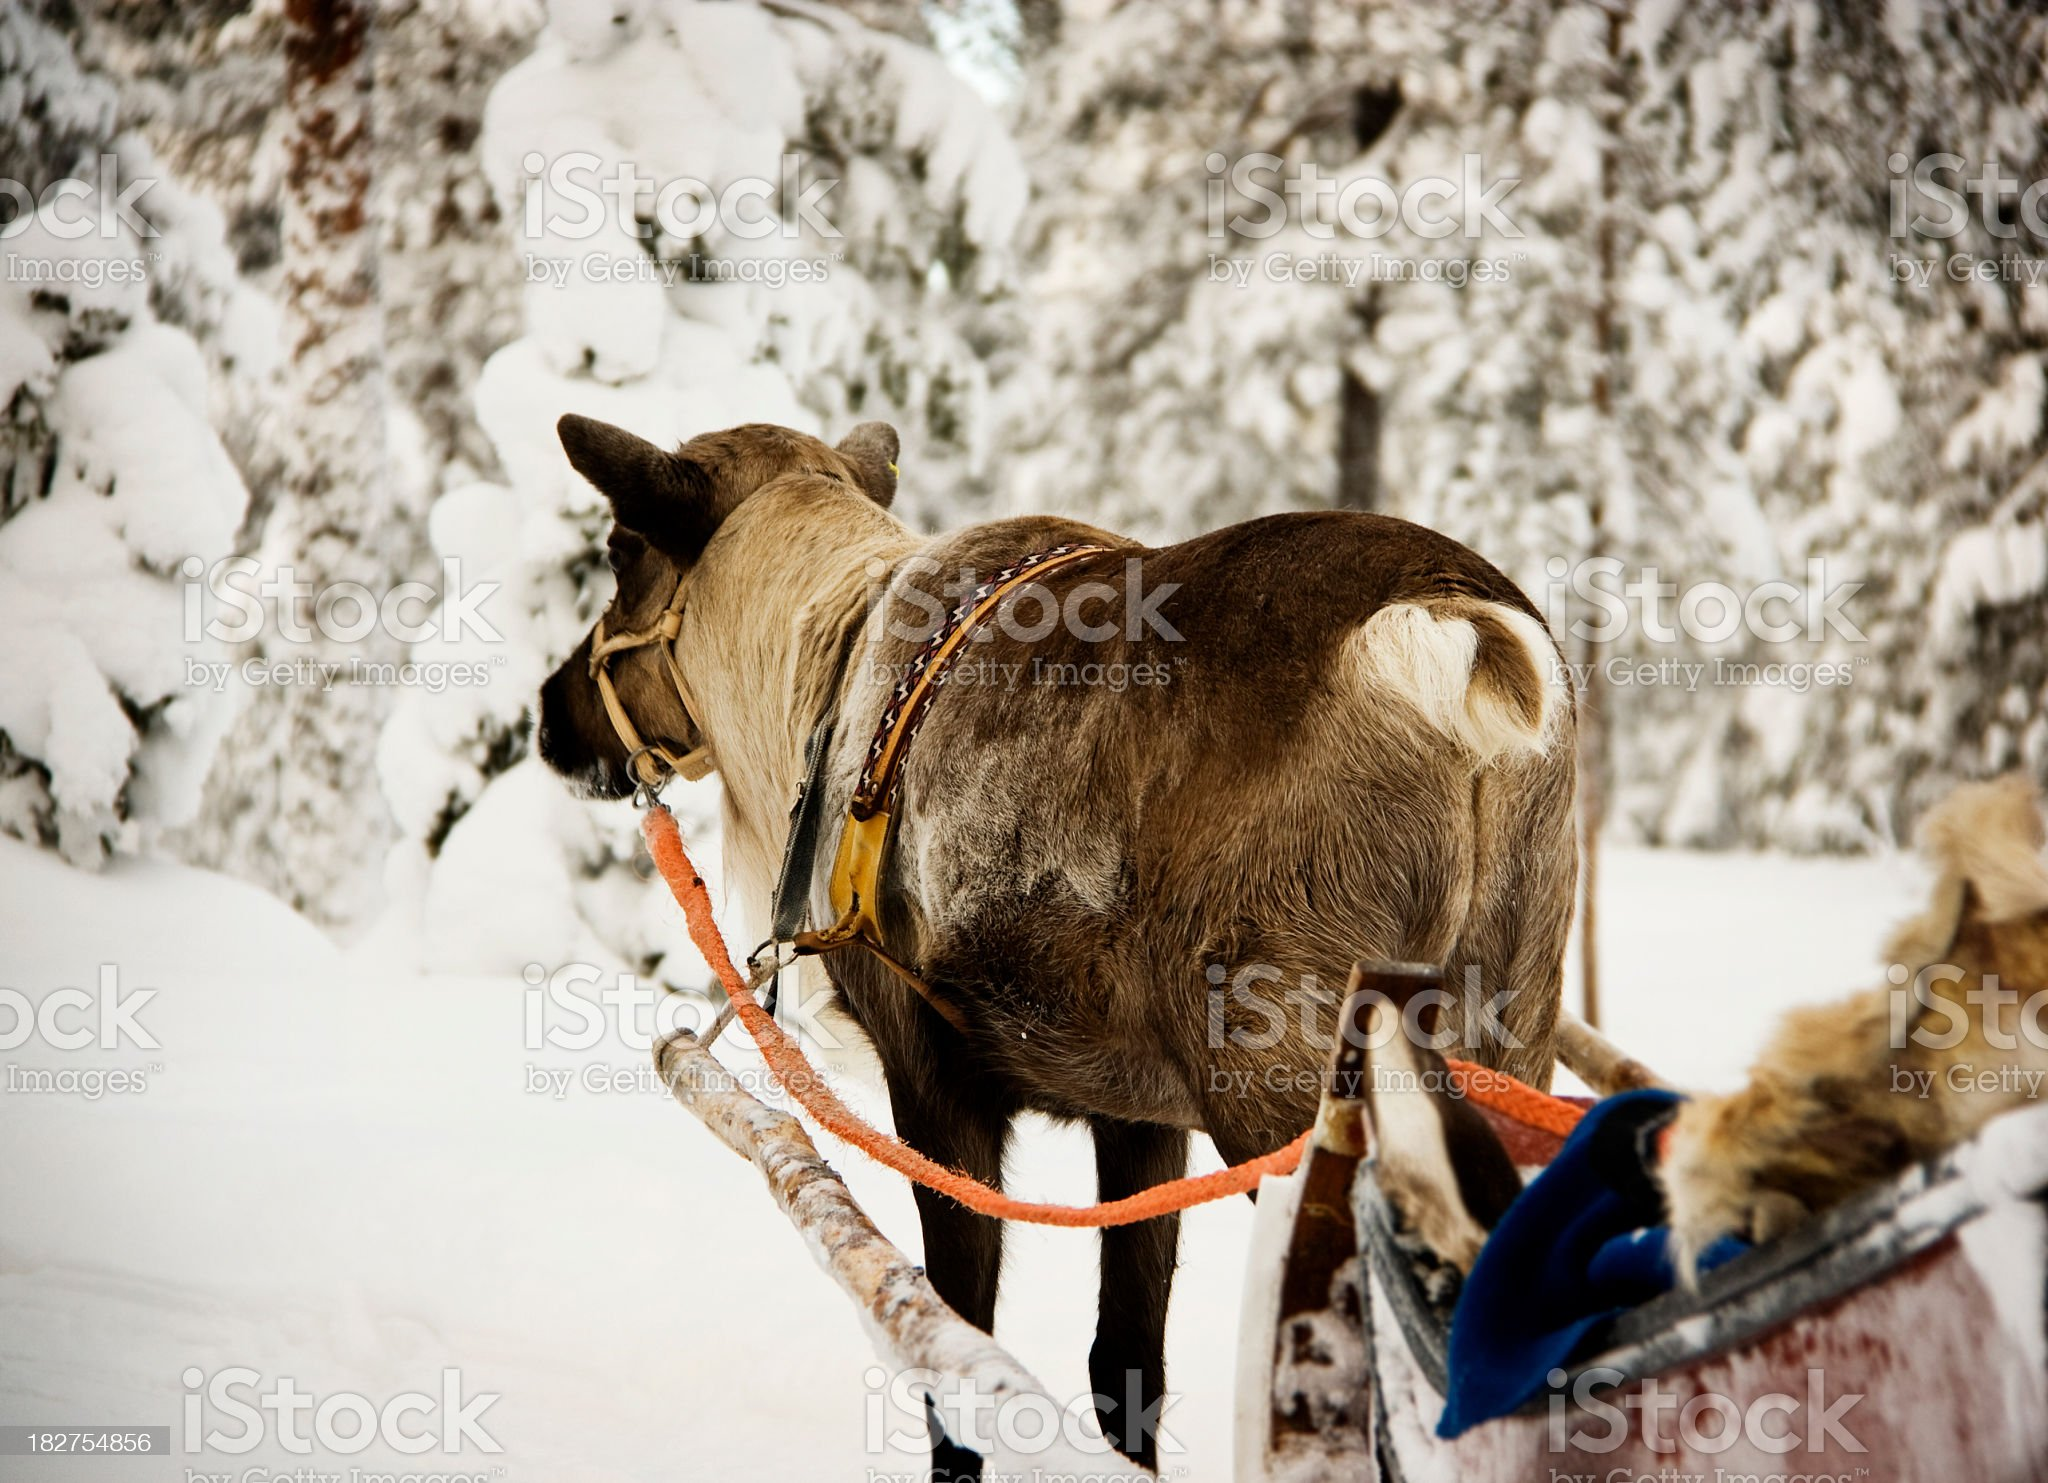 Young Reindeer Pulling a Sleigh royalty-free stock photo